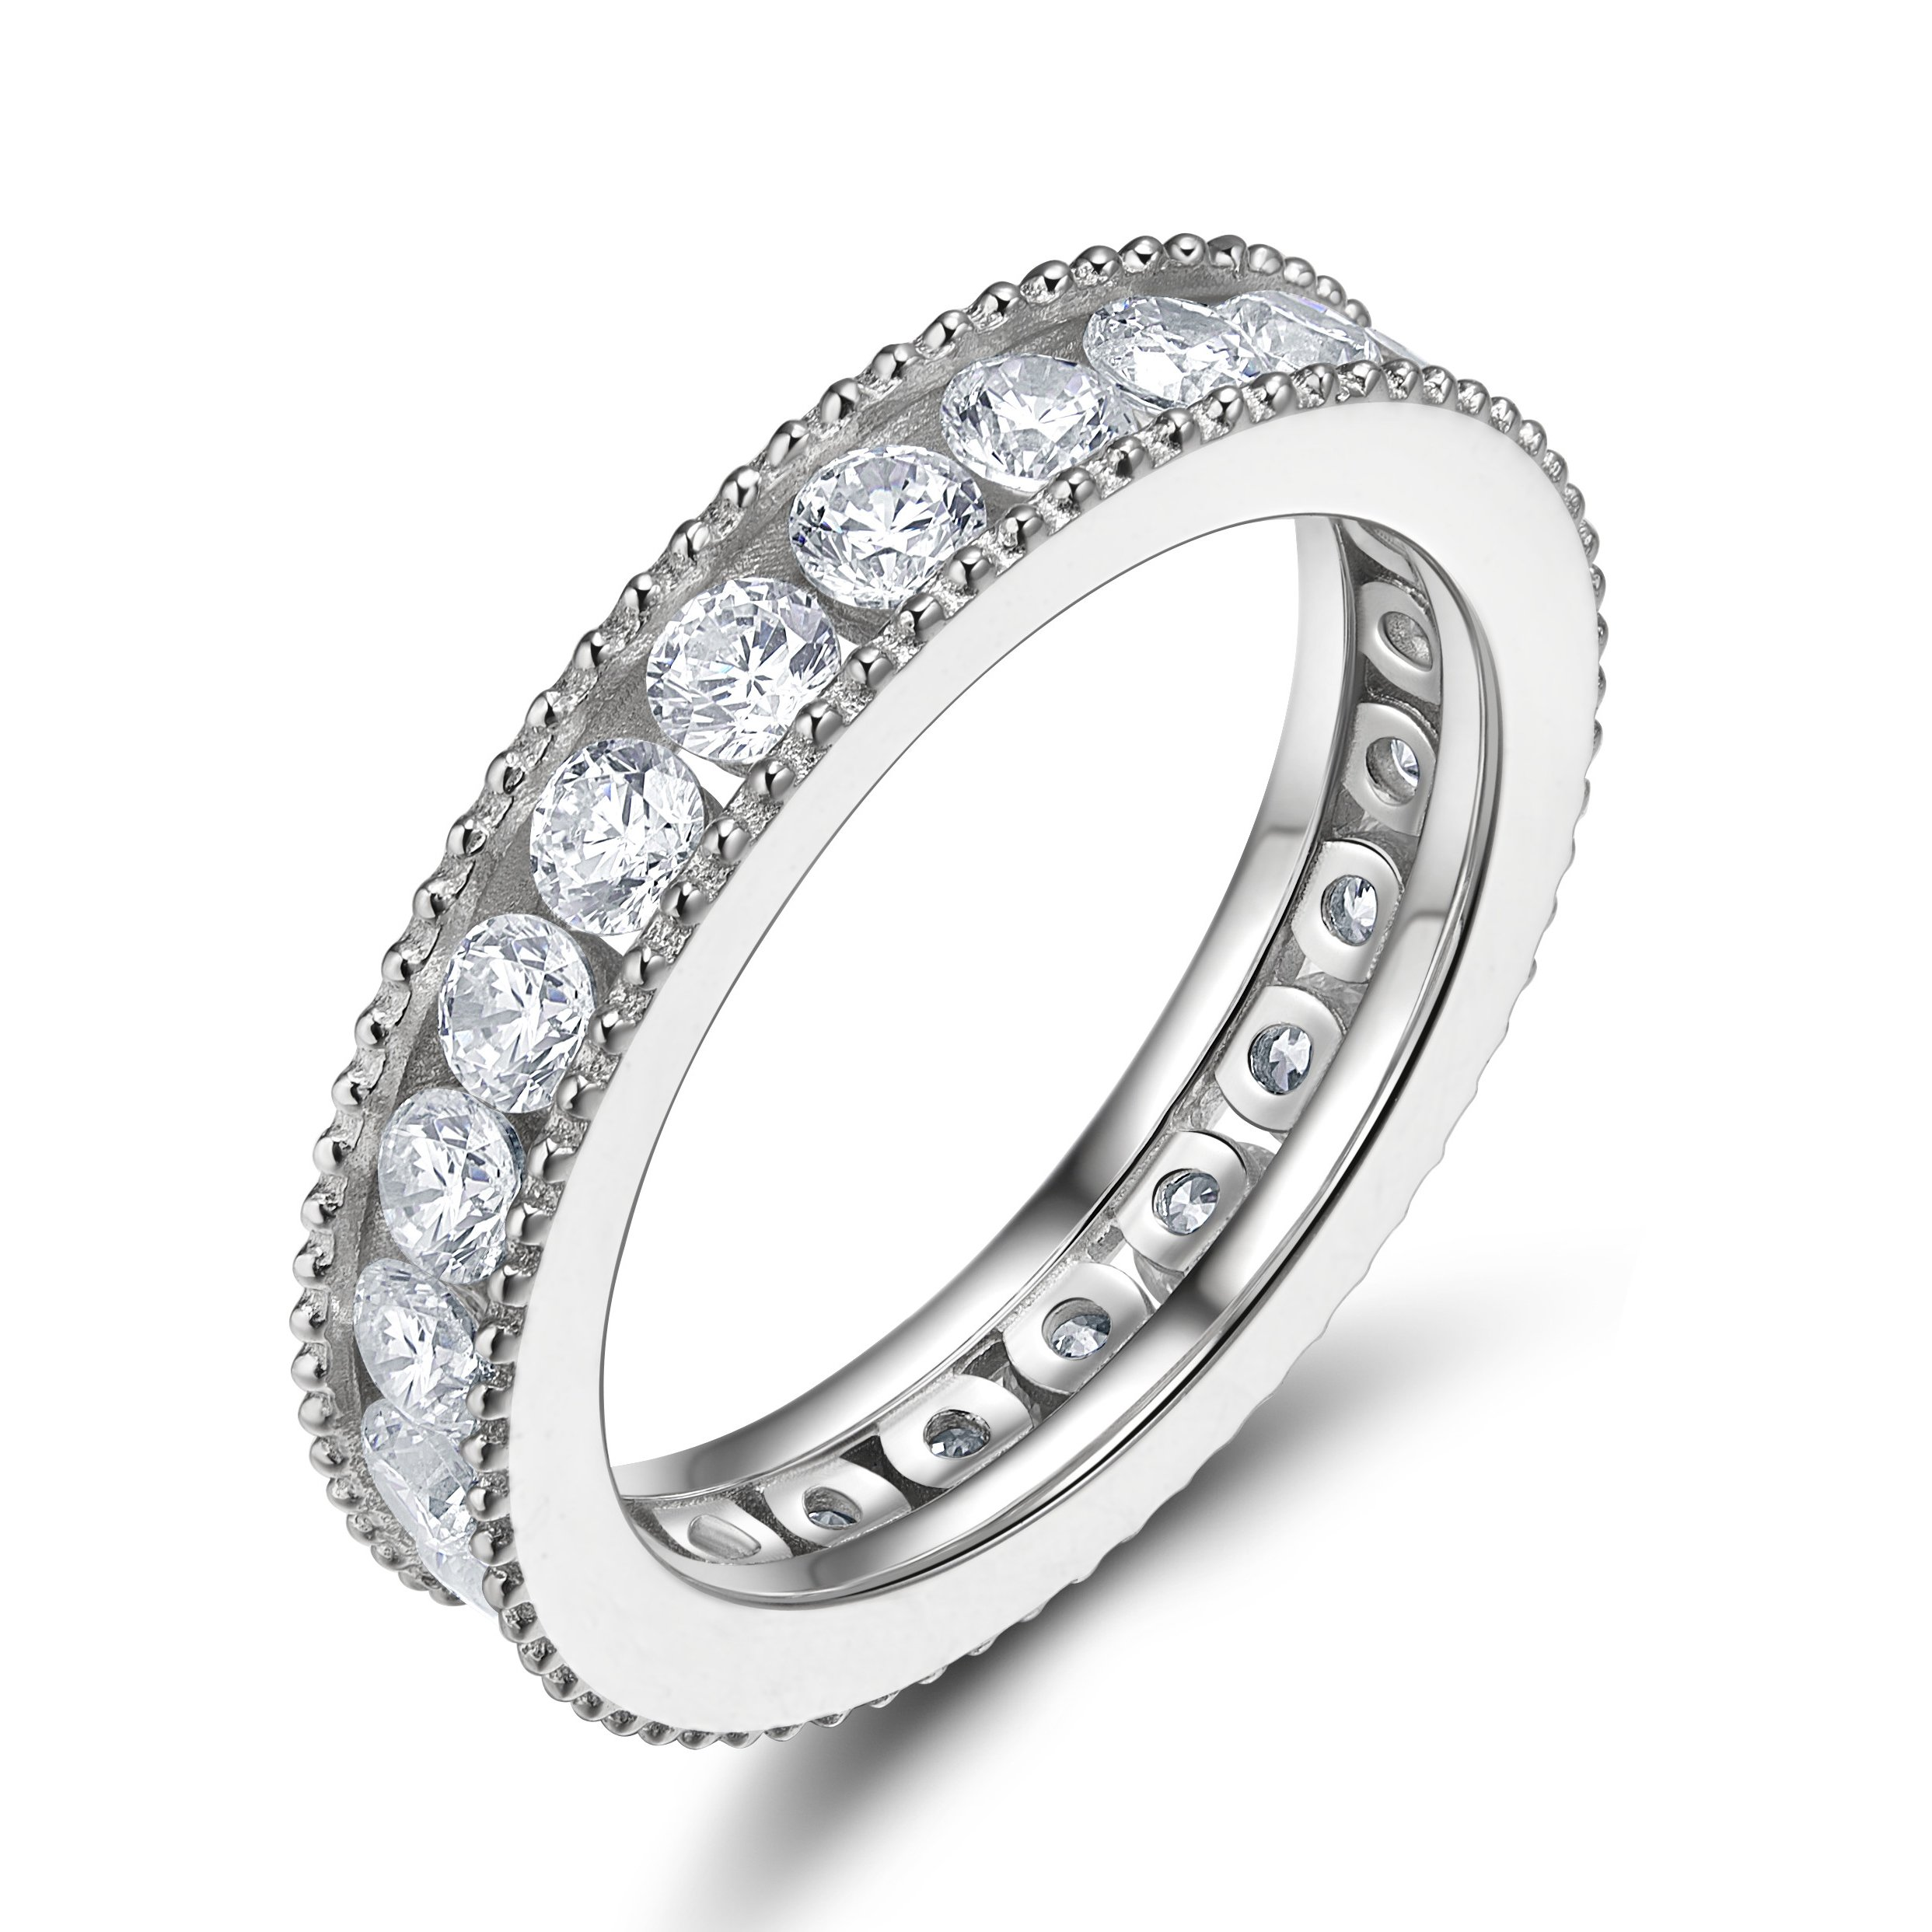 EAMTI 925 Sterling Silver Cubic Zirconia Wedding Ring for Women CZ Eternity Rings Engagement Wedding Band Size 10